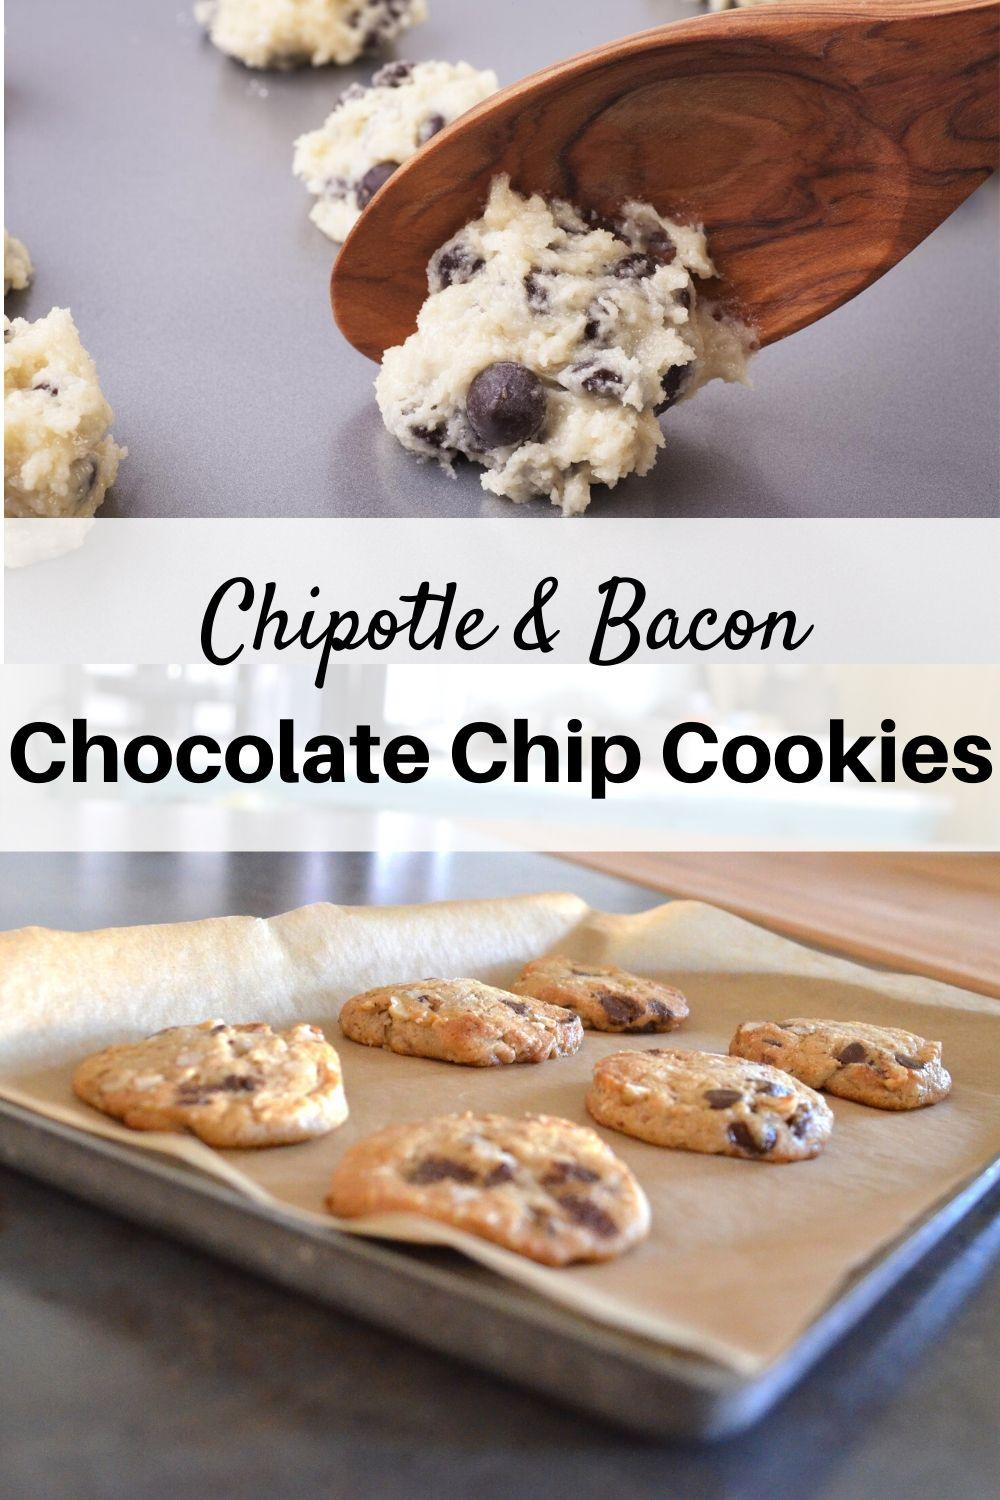 Chipotle and Bacon Chocolate Chip Cookies Pinnable Graphic